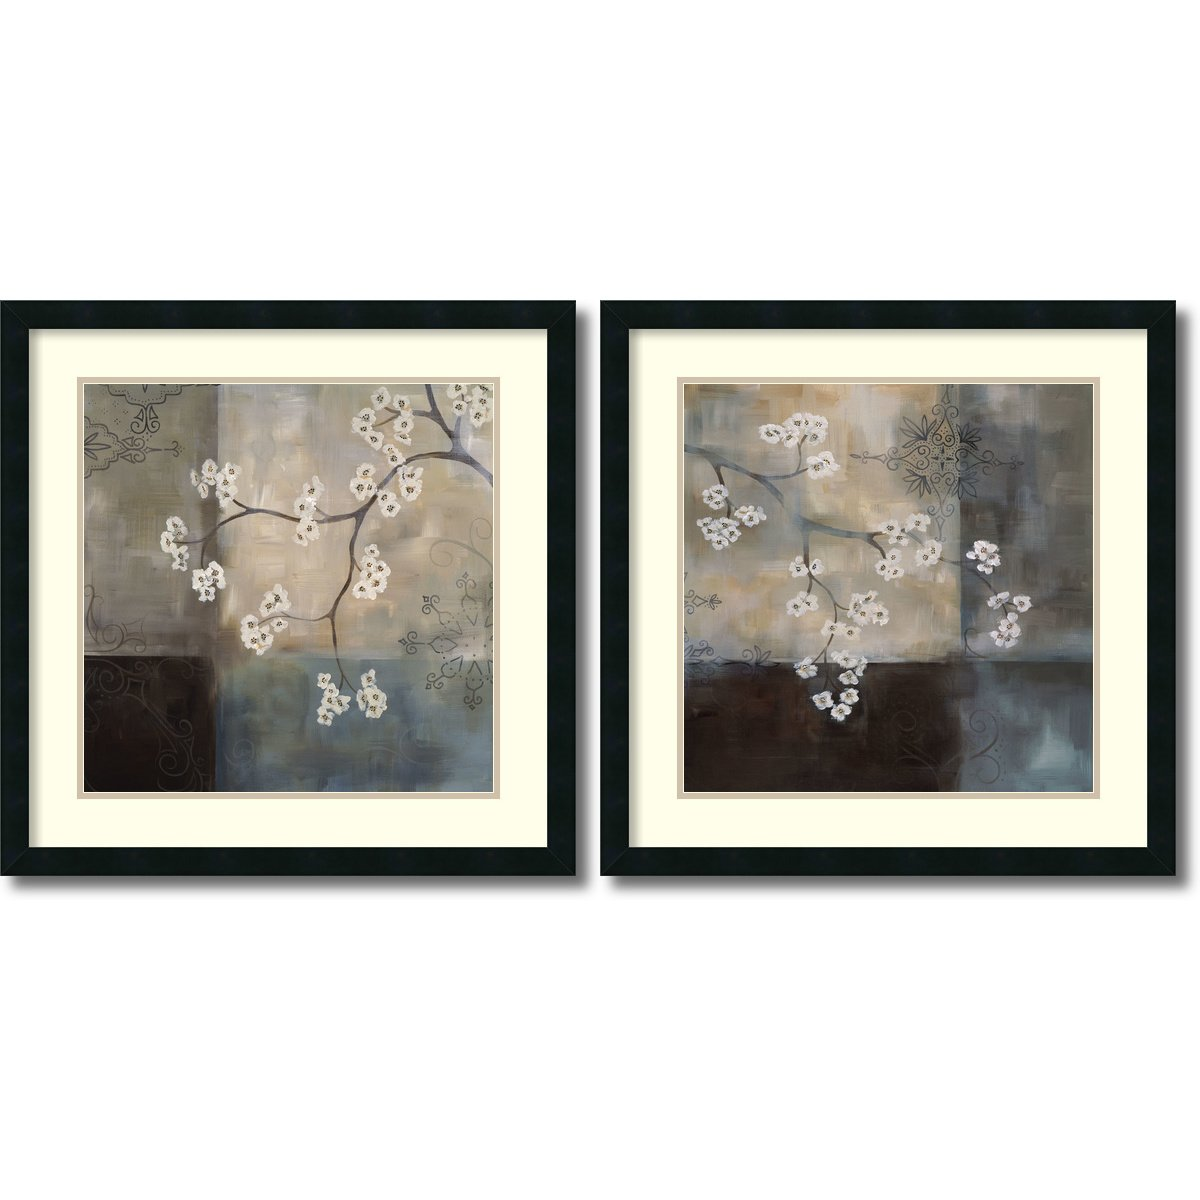 Framed Art Print, 'Spa Blossom, Large- set of 2' by Laurie Maitland: Outer Size 25 x 25'' Each